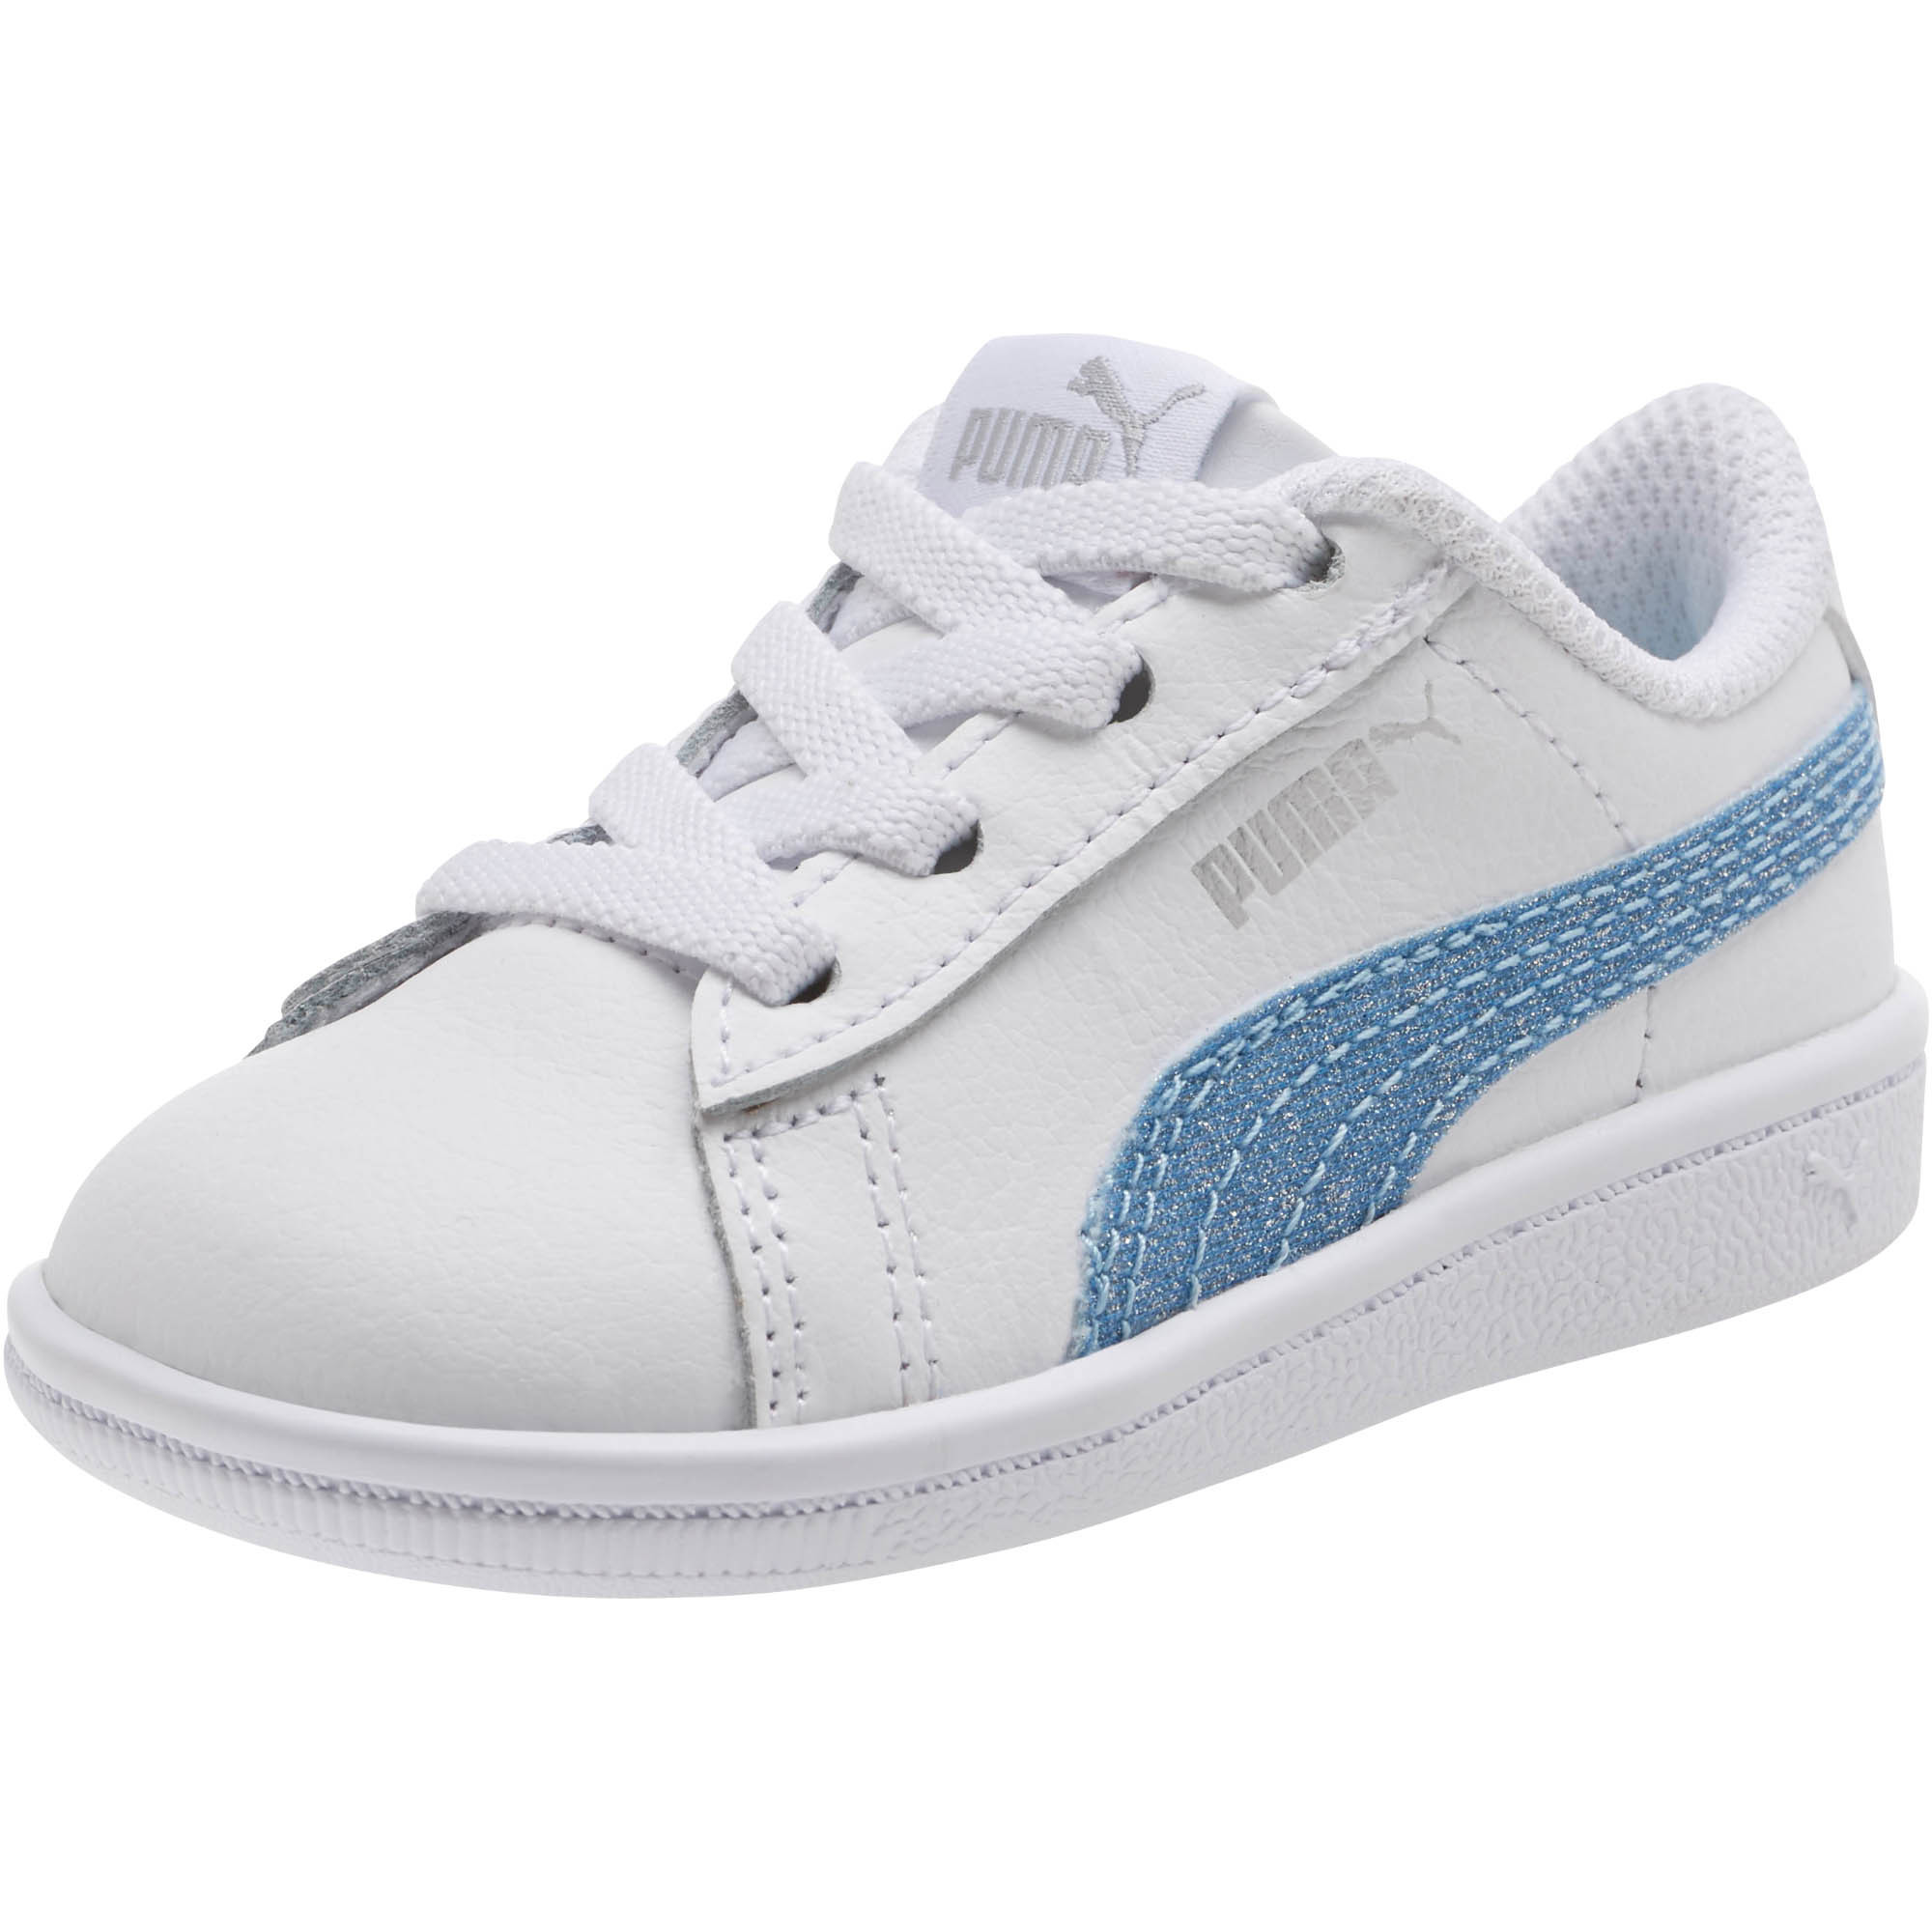 Infant Sneakers Details About Puma Puma Vikky Glitz Fs Ac Infant Sneakers Girls Shoe Kids